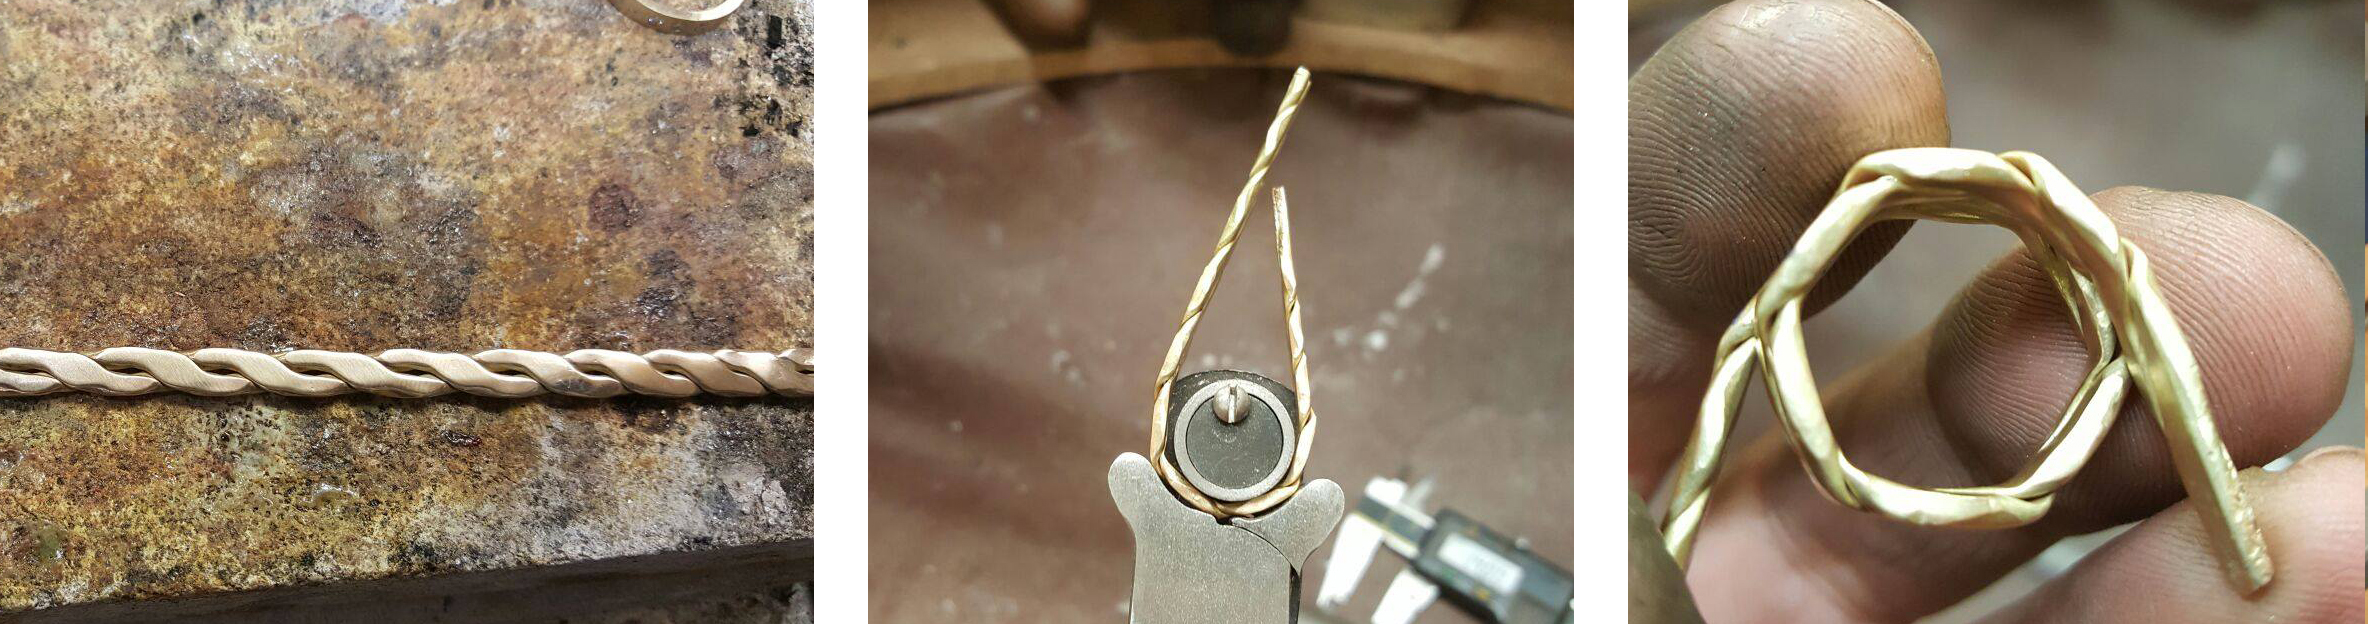 A few behind the scene photos of two sentimental gold rings becoming one, handmade by LuLu & Charles Jewellery